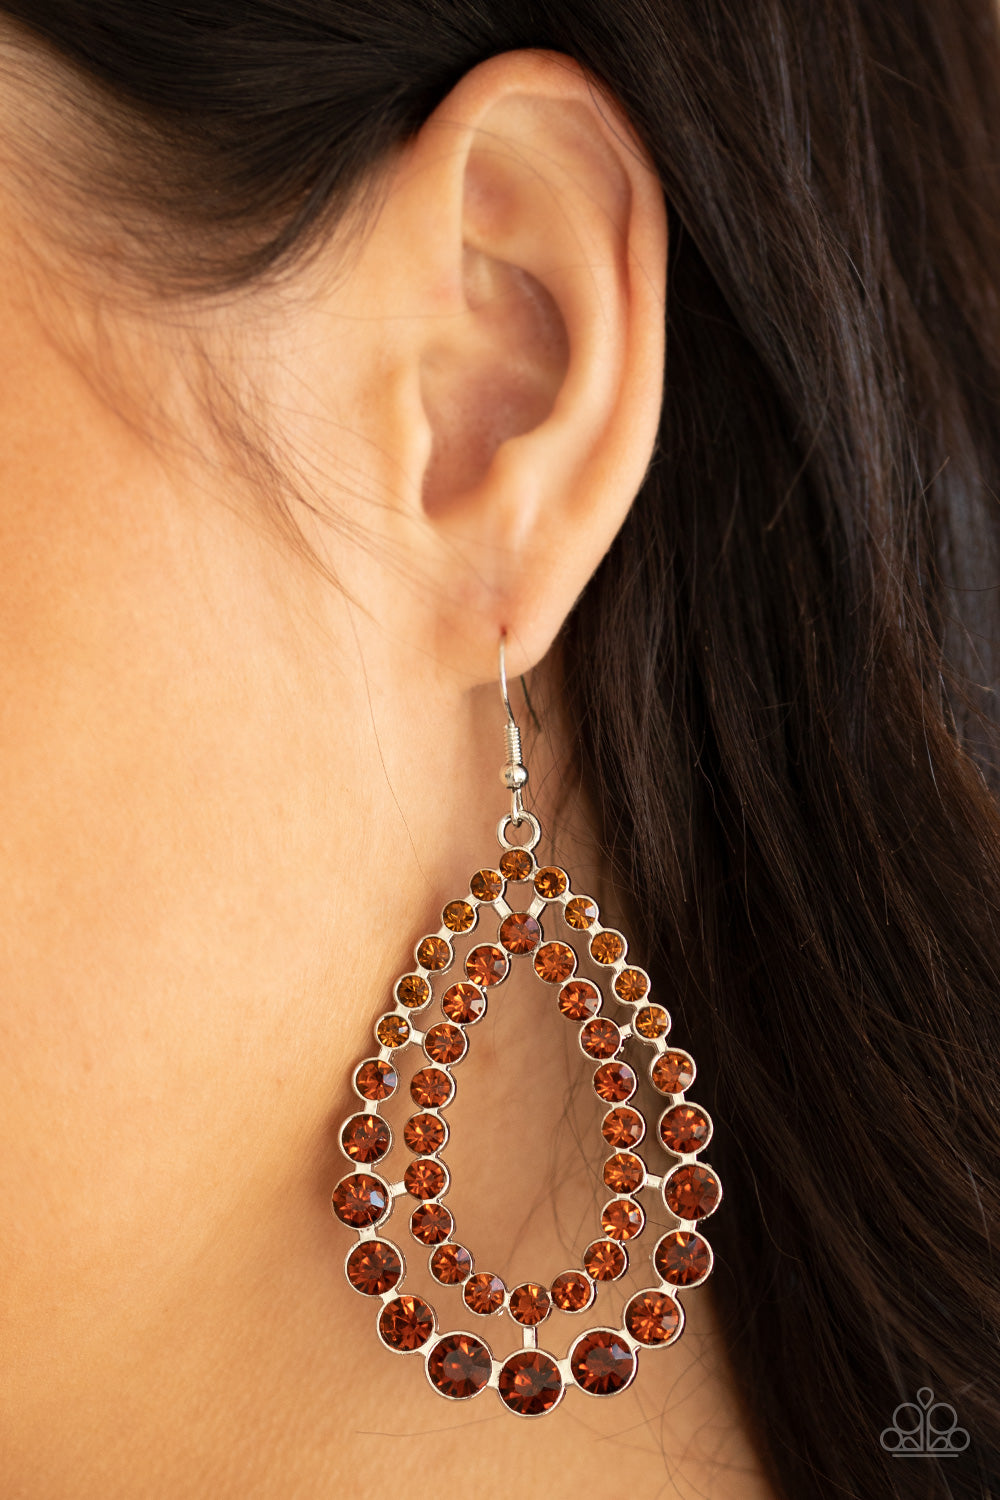 Paparazzi Jewelry & Accessories - Glacial Glaze - Brown Earrings. Bling By Titia Boutique